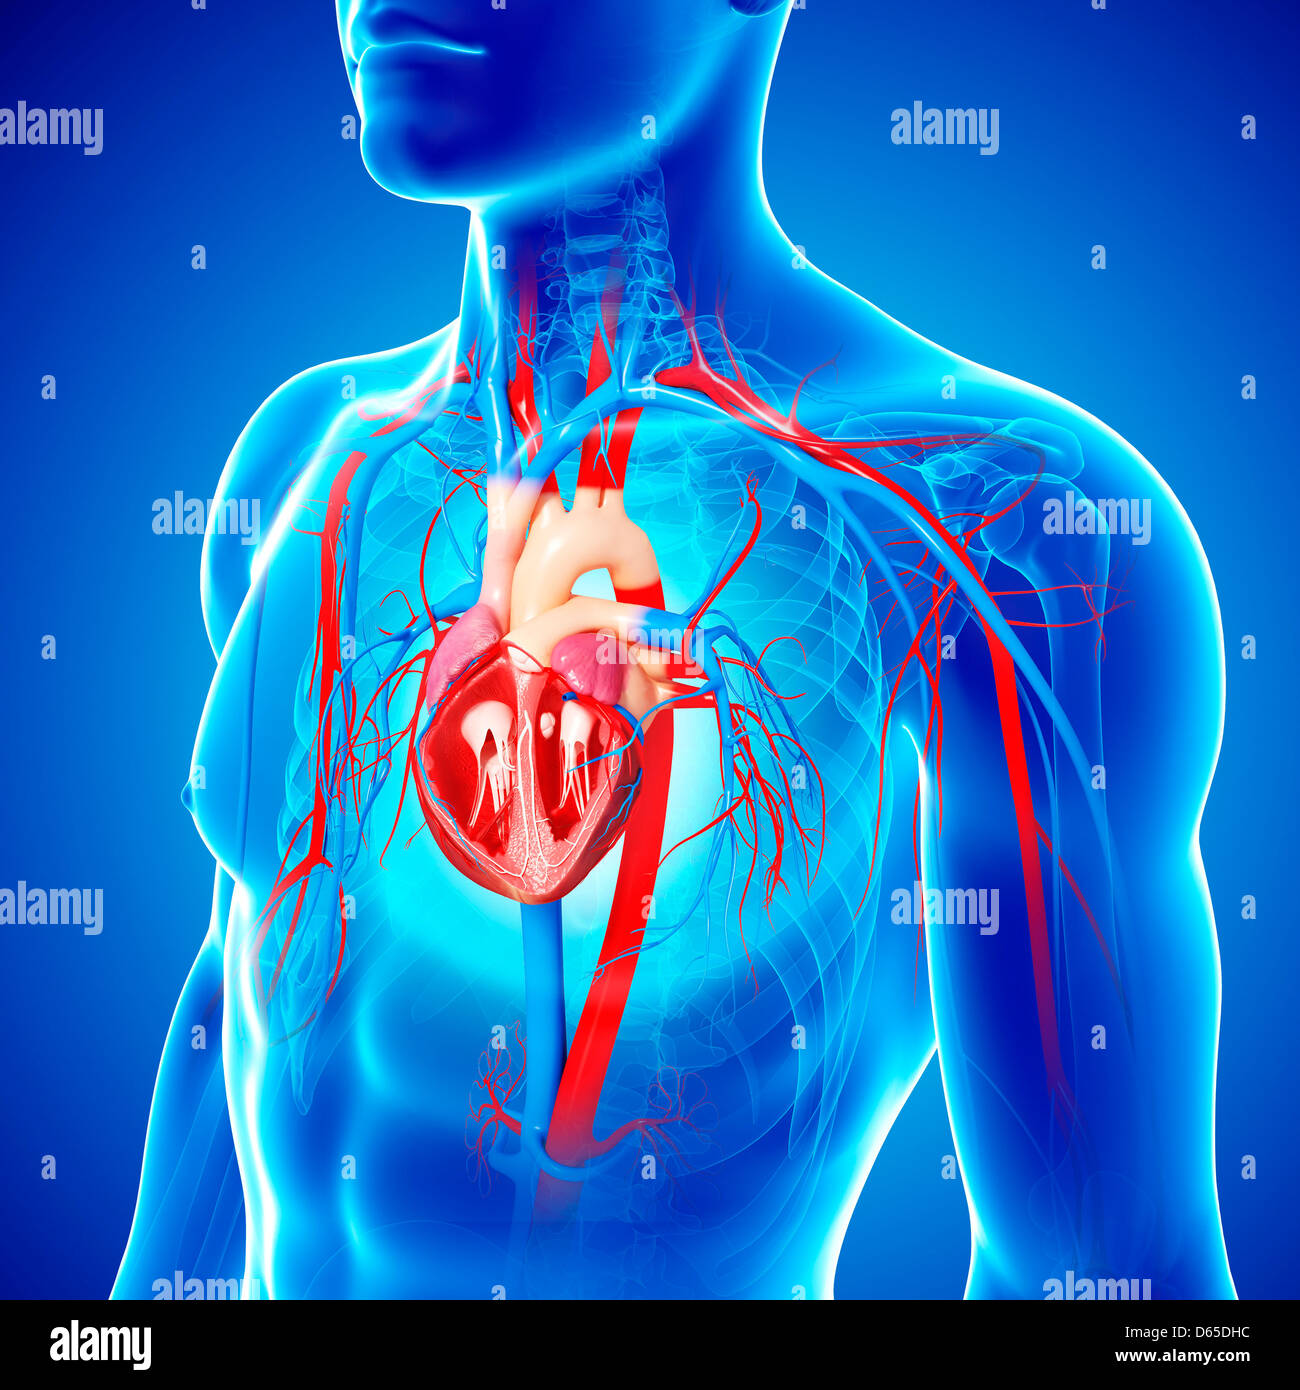 Male Chest Anatomy Heart Veins Stock Photos Male Chest Anatomy